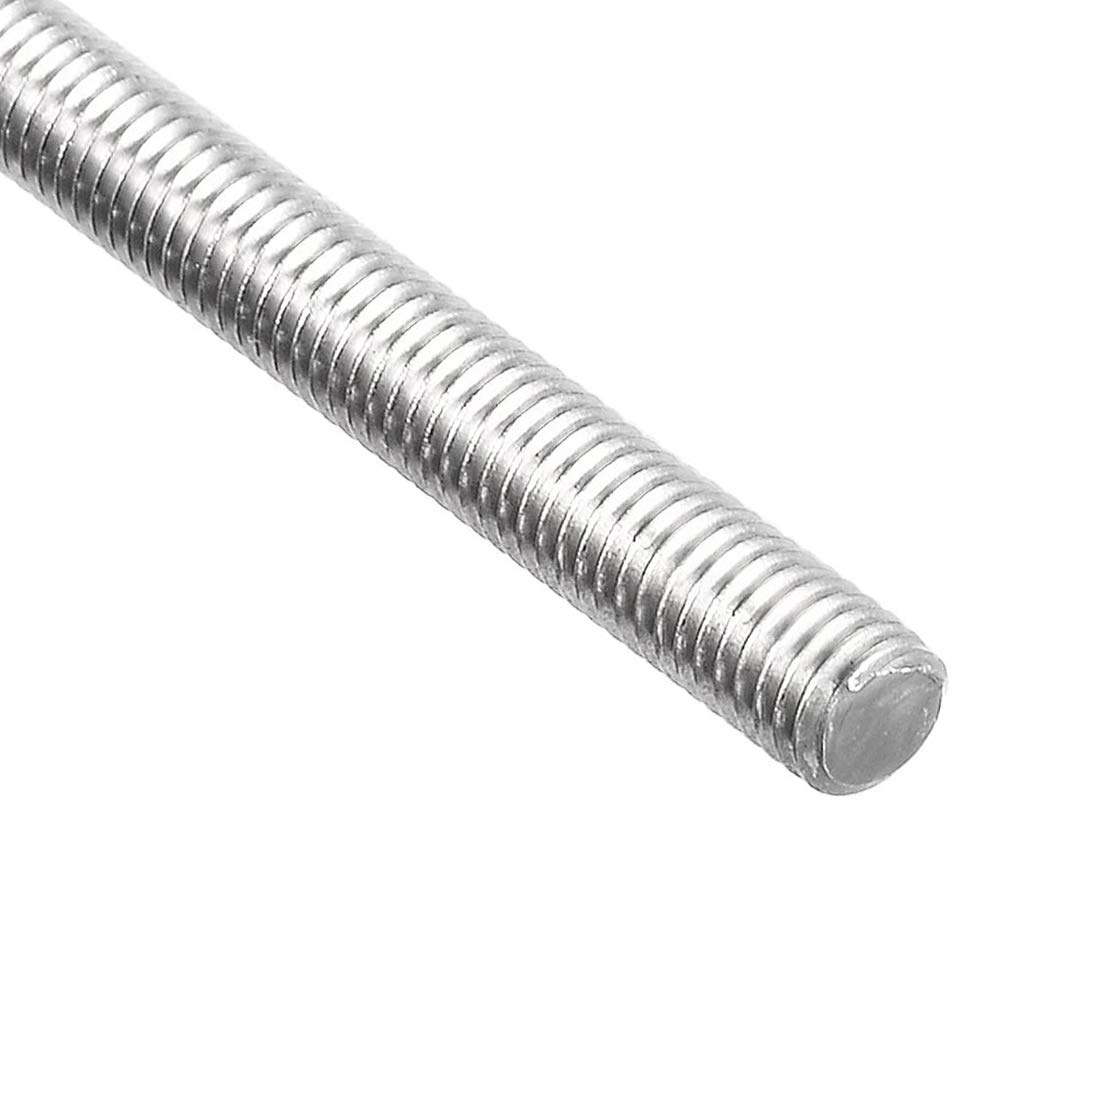 STAINLESS STEEL M2  2mm THREADED BAR STUDDING ROD NYLOCK NUTS 50mm LONG